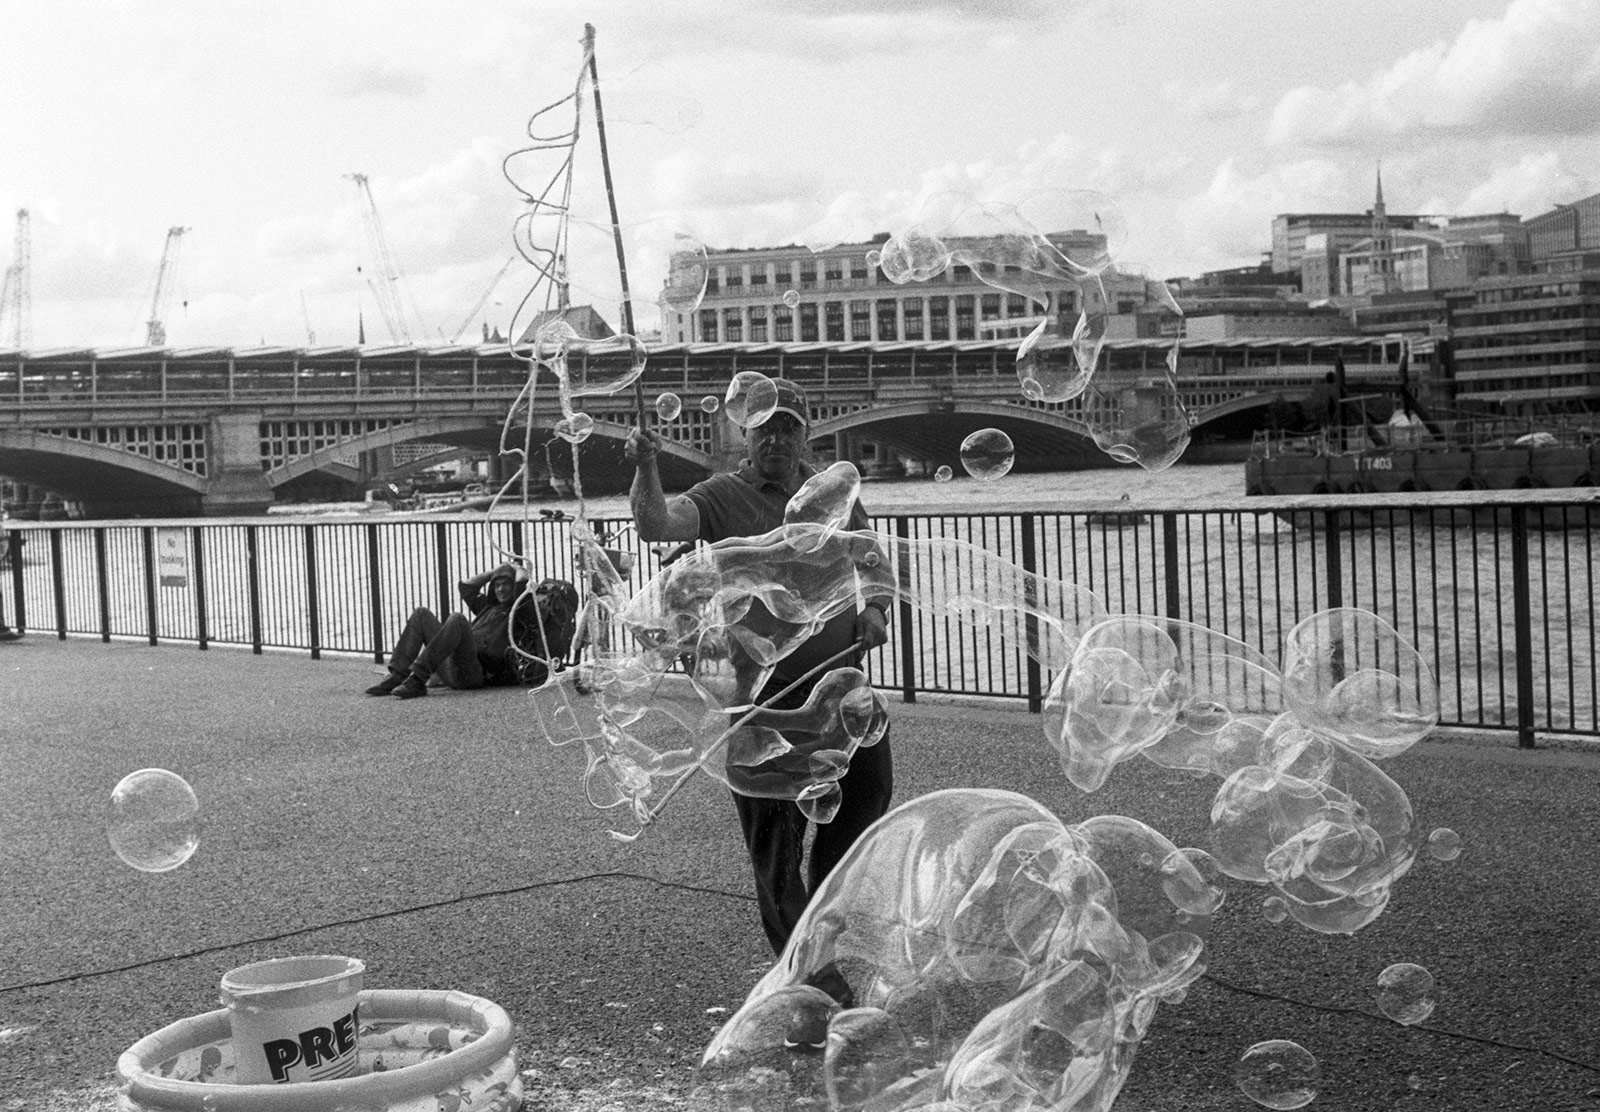 Man making bubbles